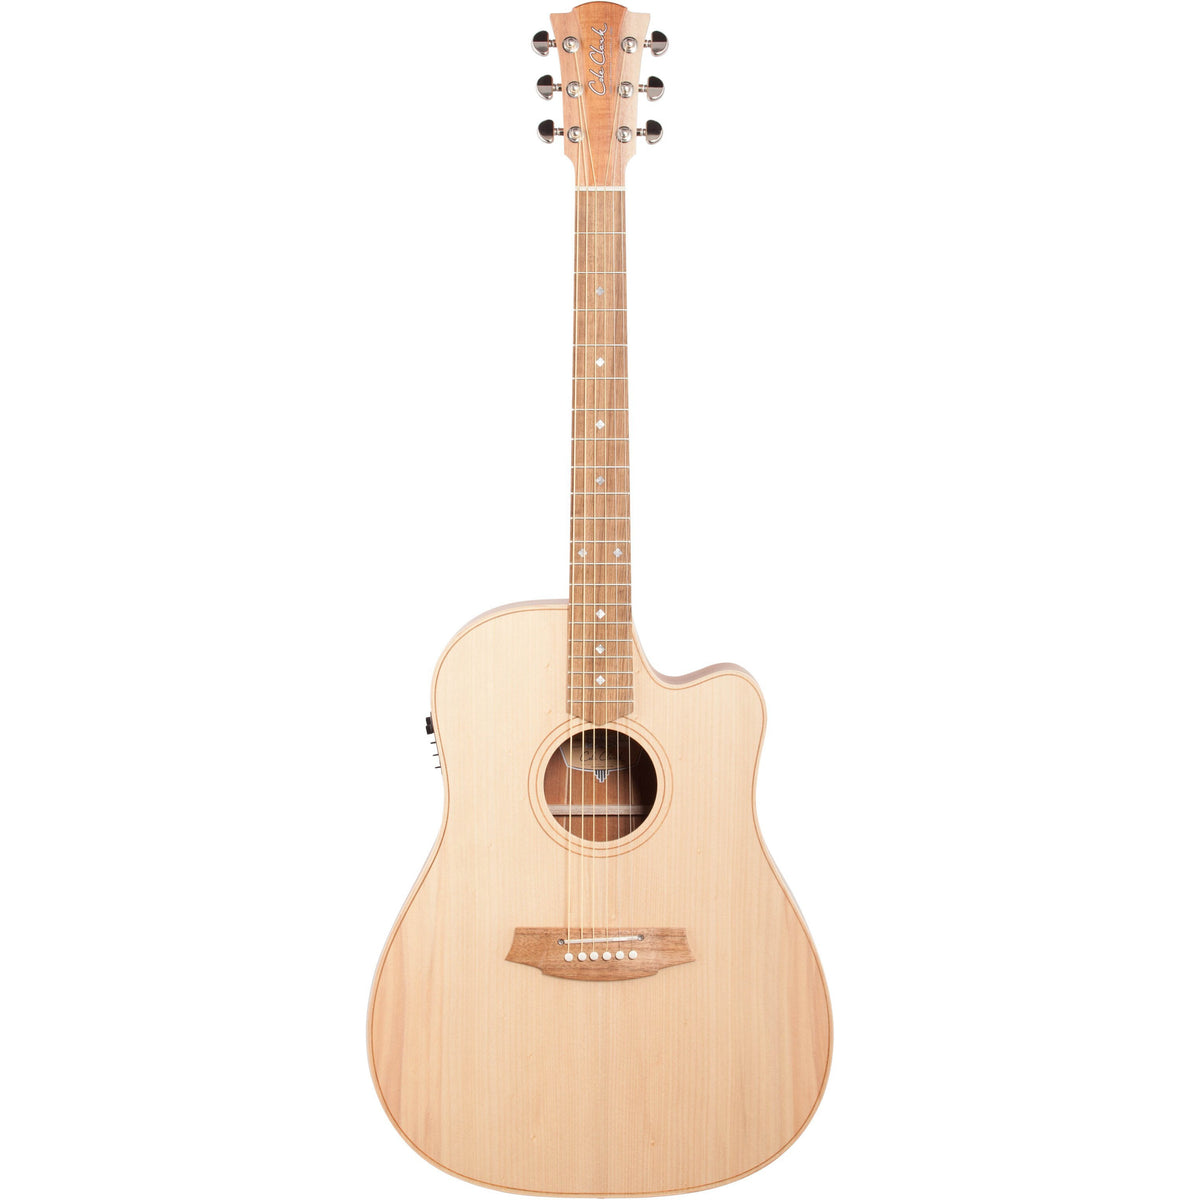 Cole Clark Fat Lady 2 Series Tasmanian Blackwood Acoustic-Electric Guitar (with Case)